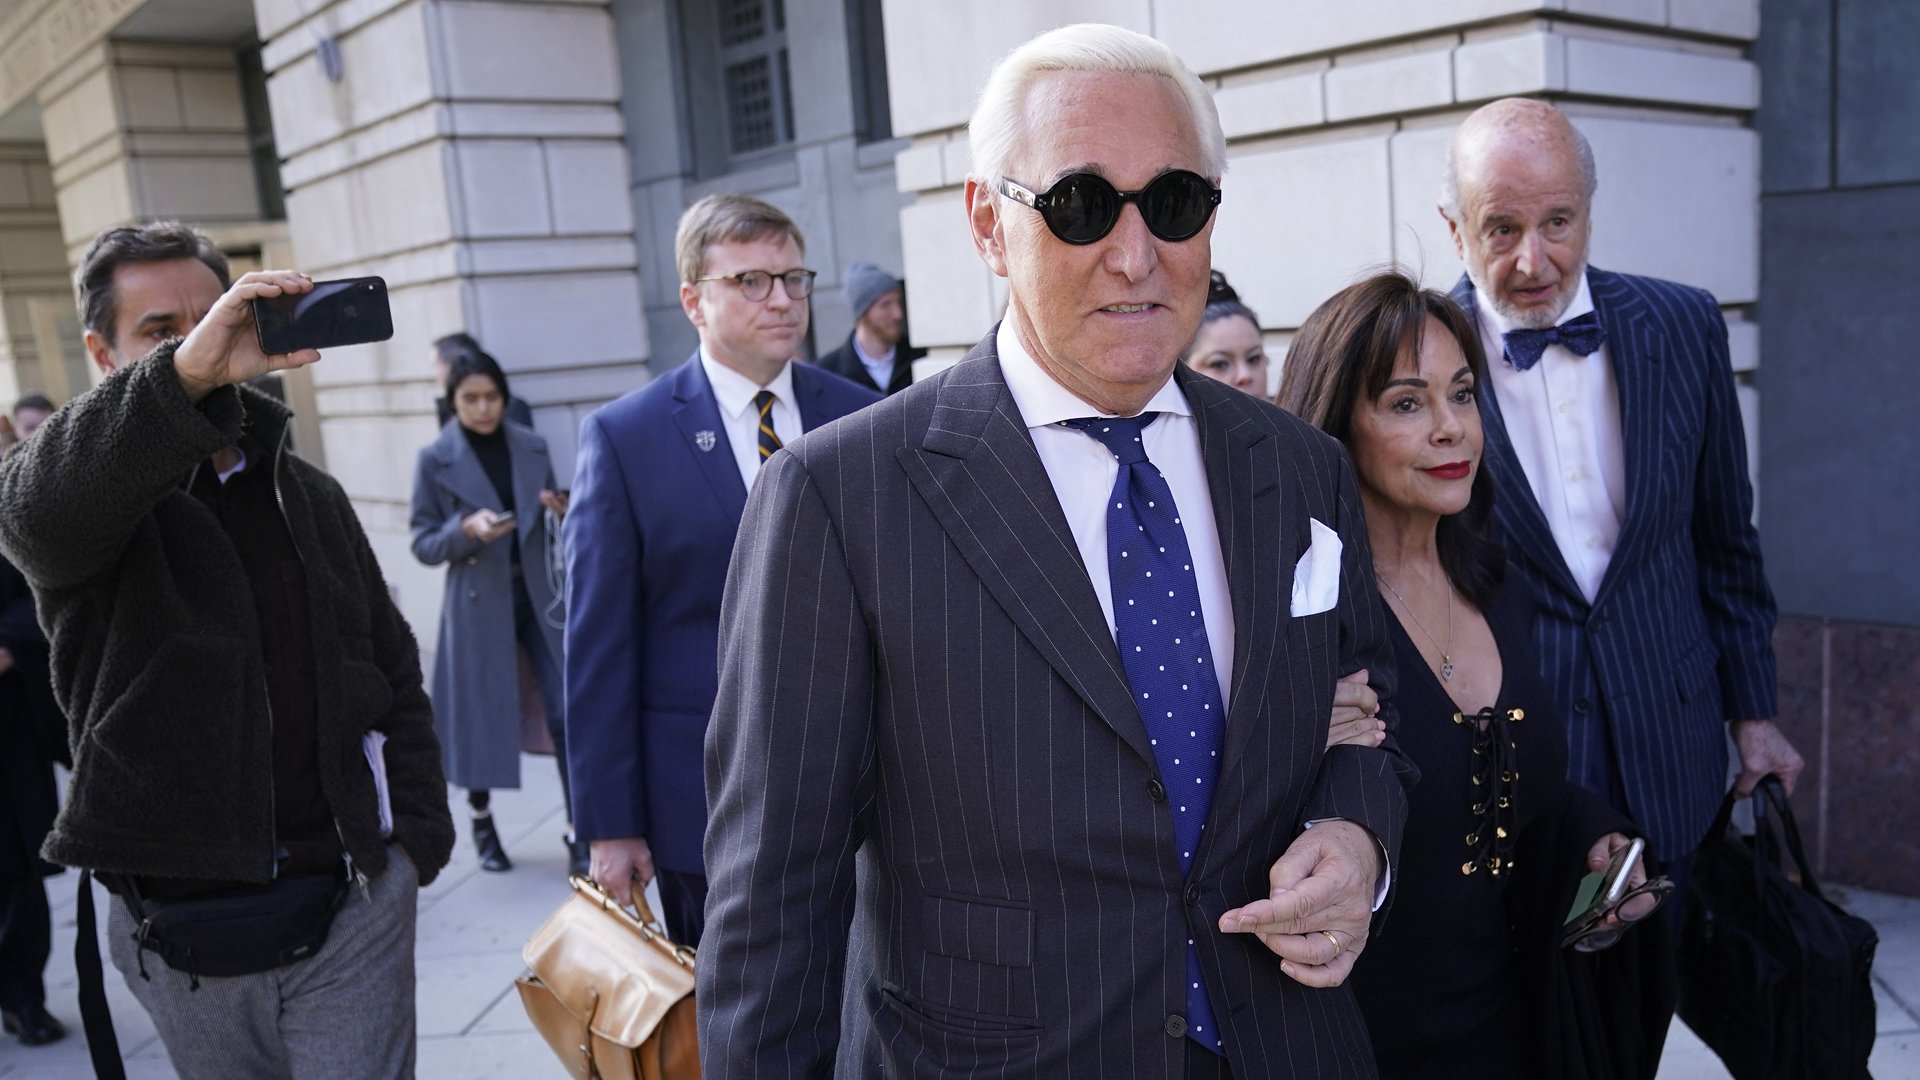 Former advisor to U.S. President Donald Trump, Roger Stone, departs the E. Barrett Prettyman United States Courthouse with his wife Nydia after being found guilty of obstructing a congressional investigation into Russia's interference in the 2016 election on November 15, 2019 in Washington, DC. (Credit: Win McNamee/Getty Images)